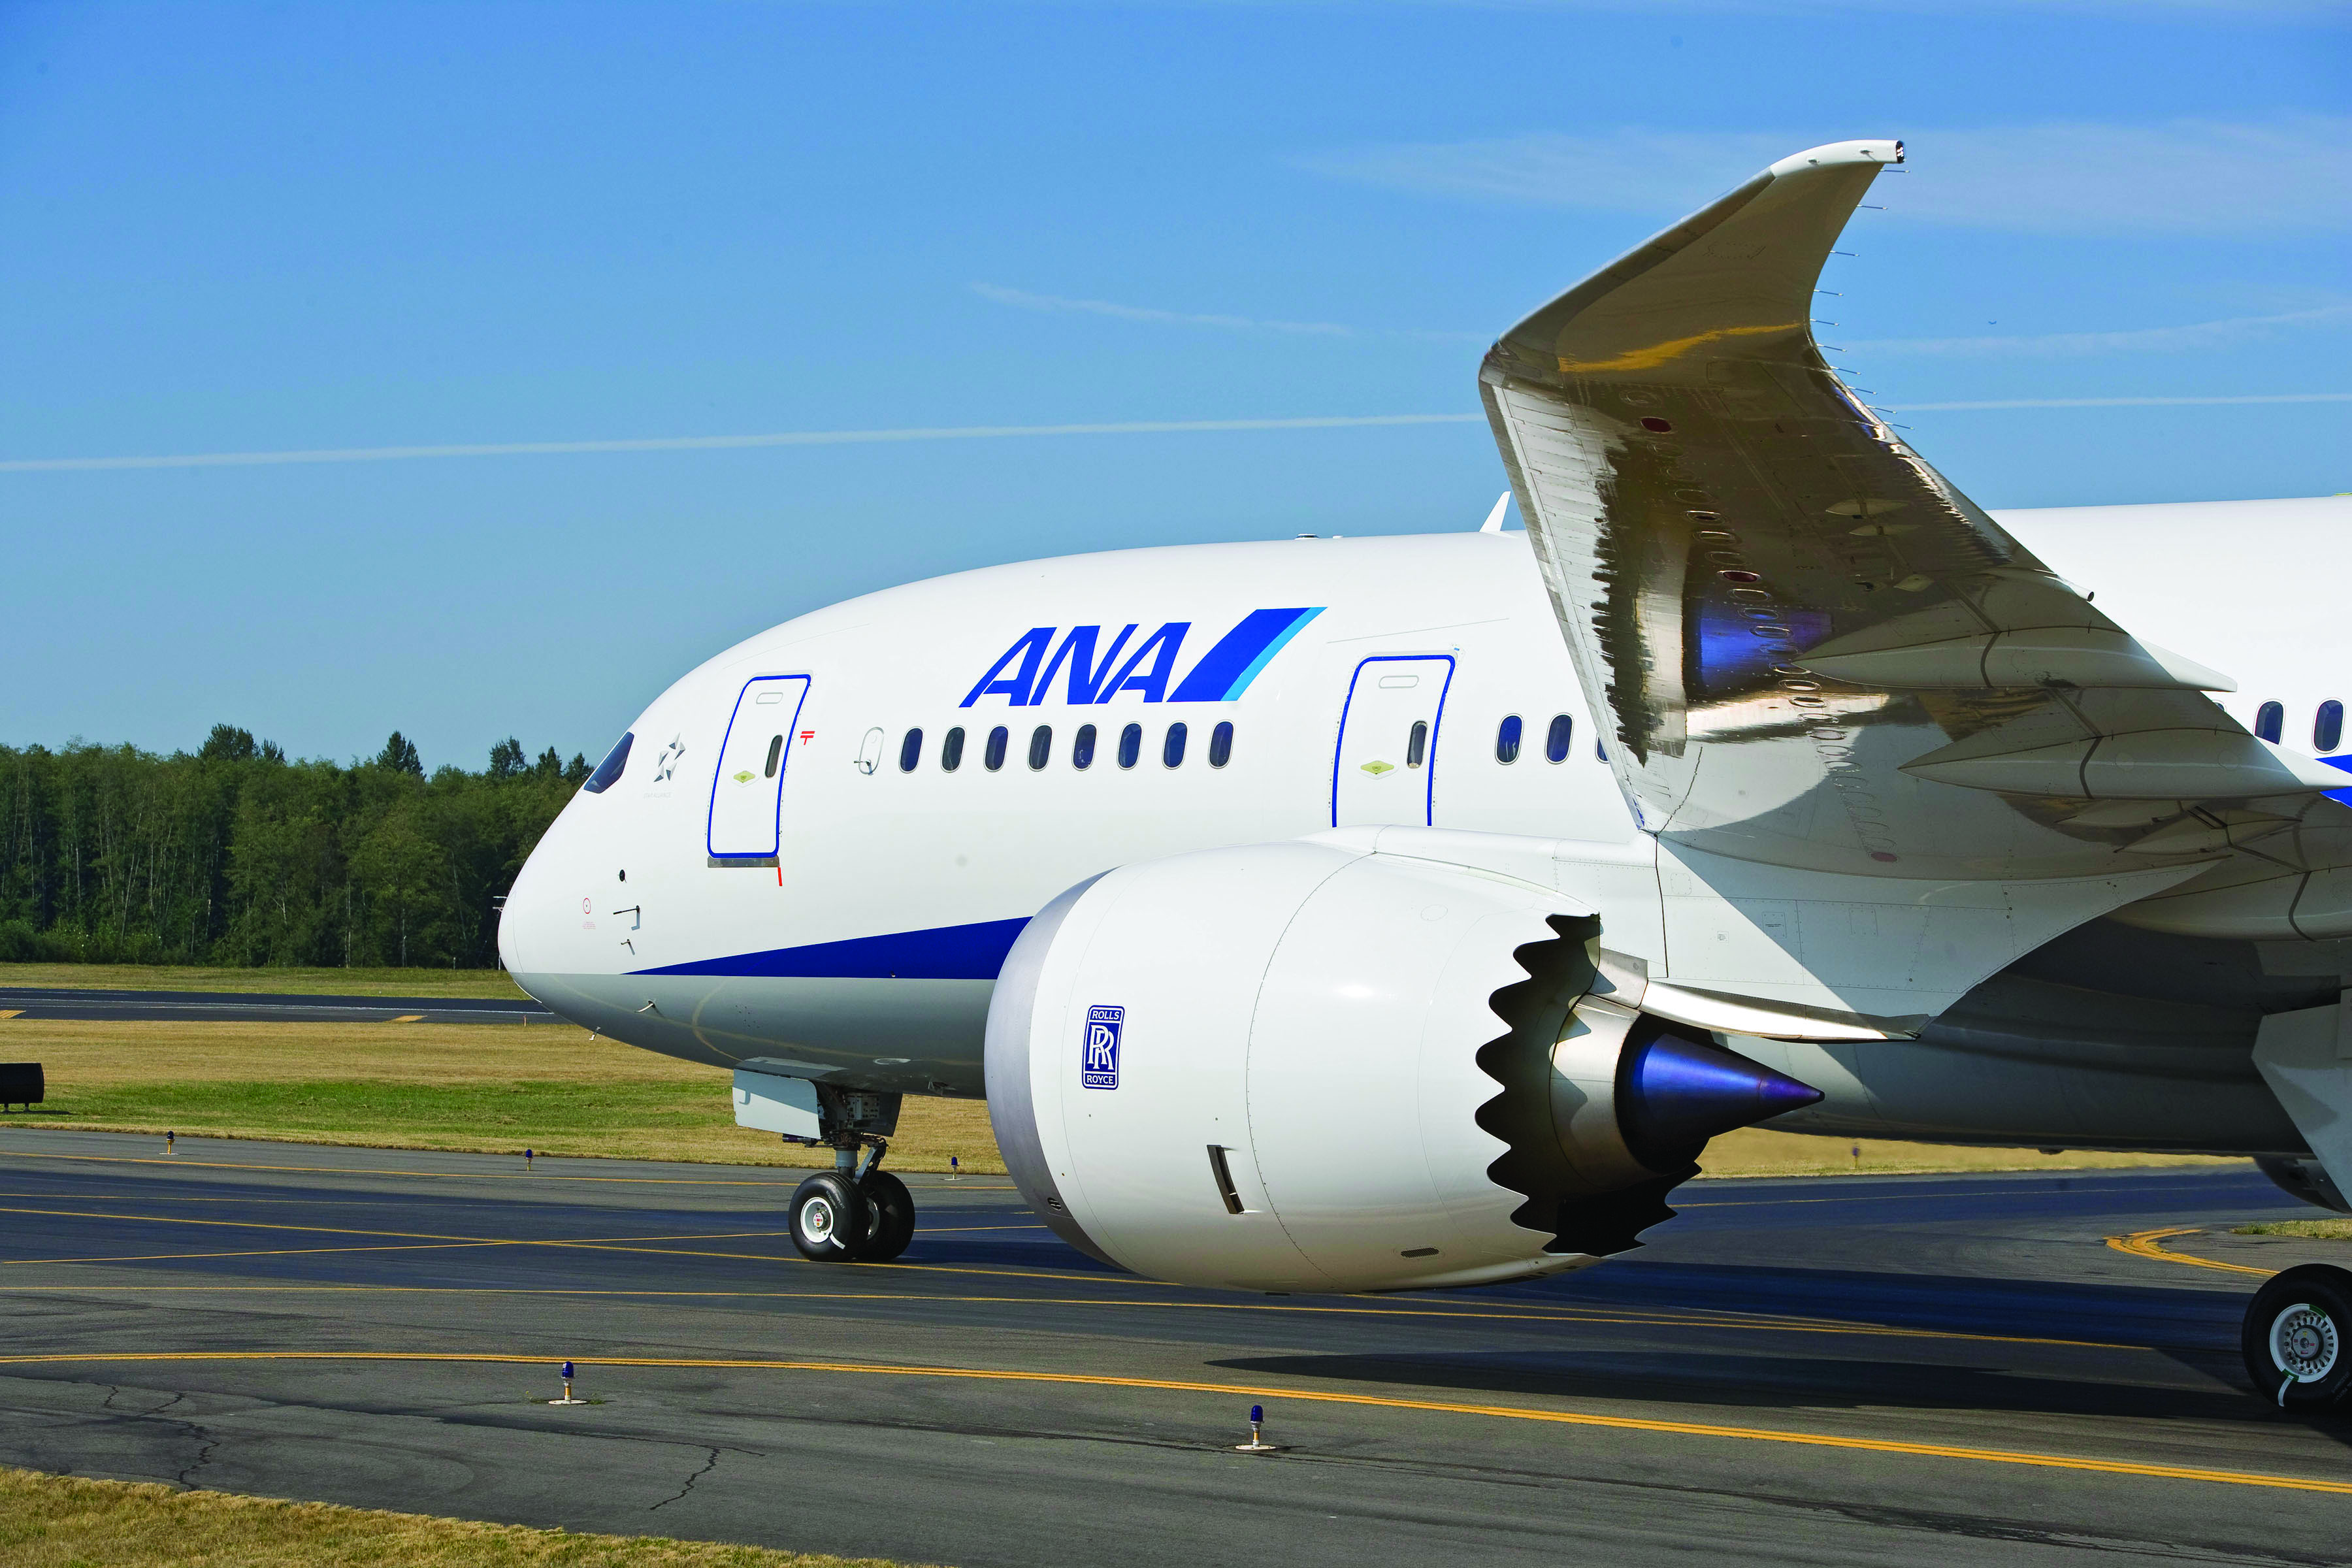 All Nippon Airways is the world's first carrier to take delivery of the Boeing 787 Dreamliner, shown above on the tarmac in Tokyo,